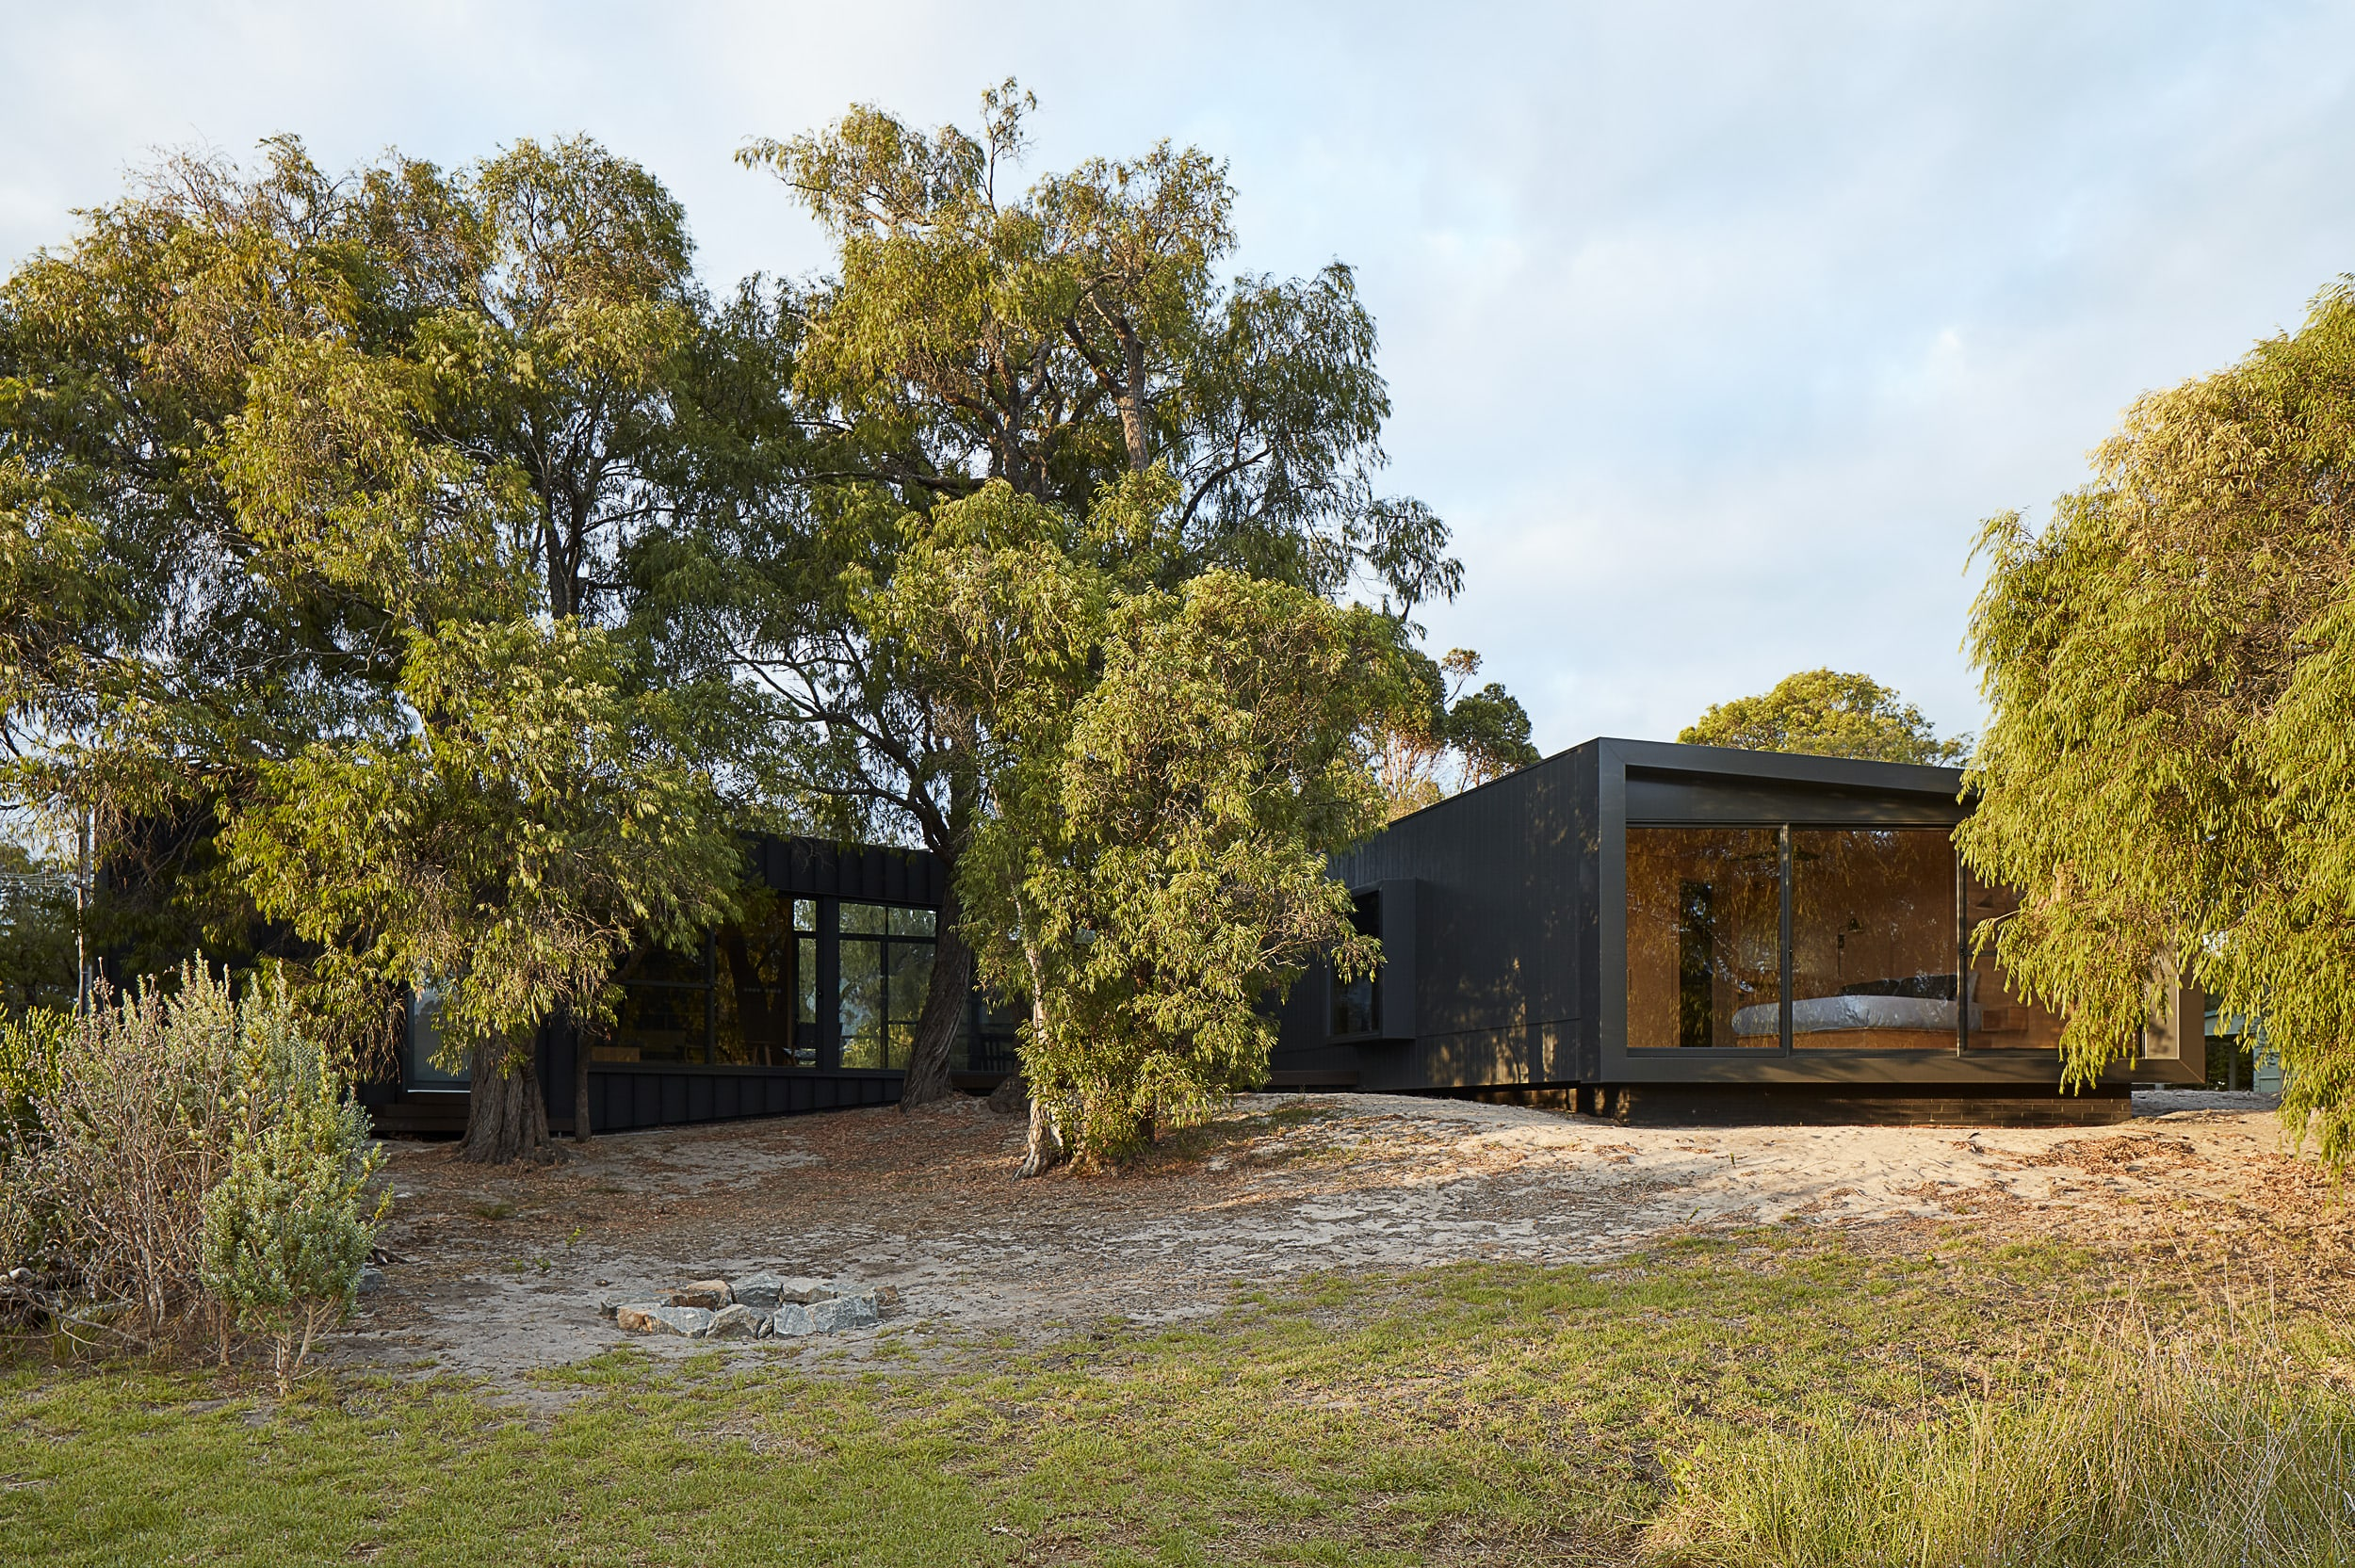 82 Degrees By Meaghan White Architect Local Australian Design And Interiors Quindalup, Wa Image 12